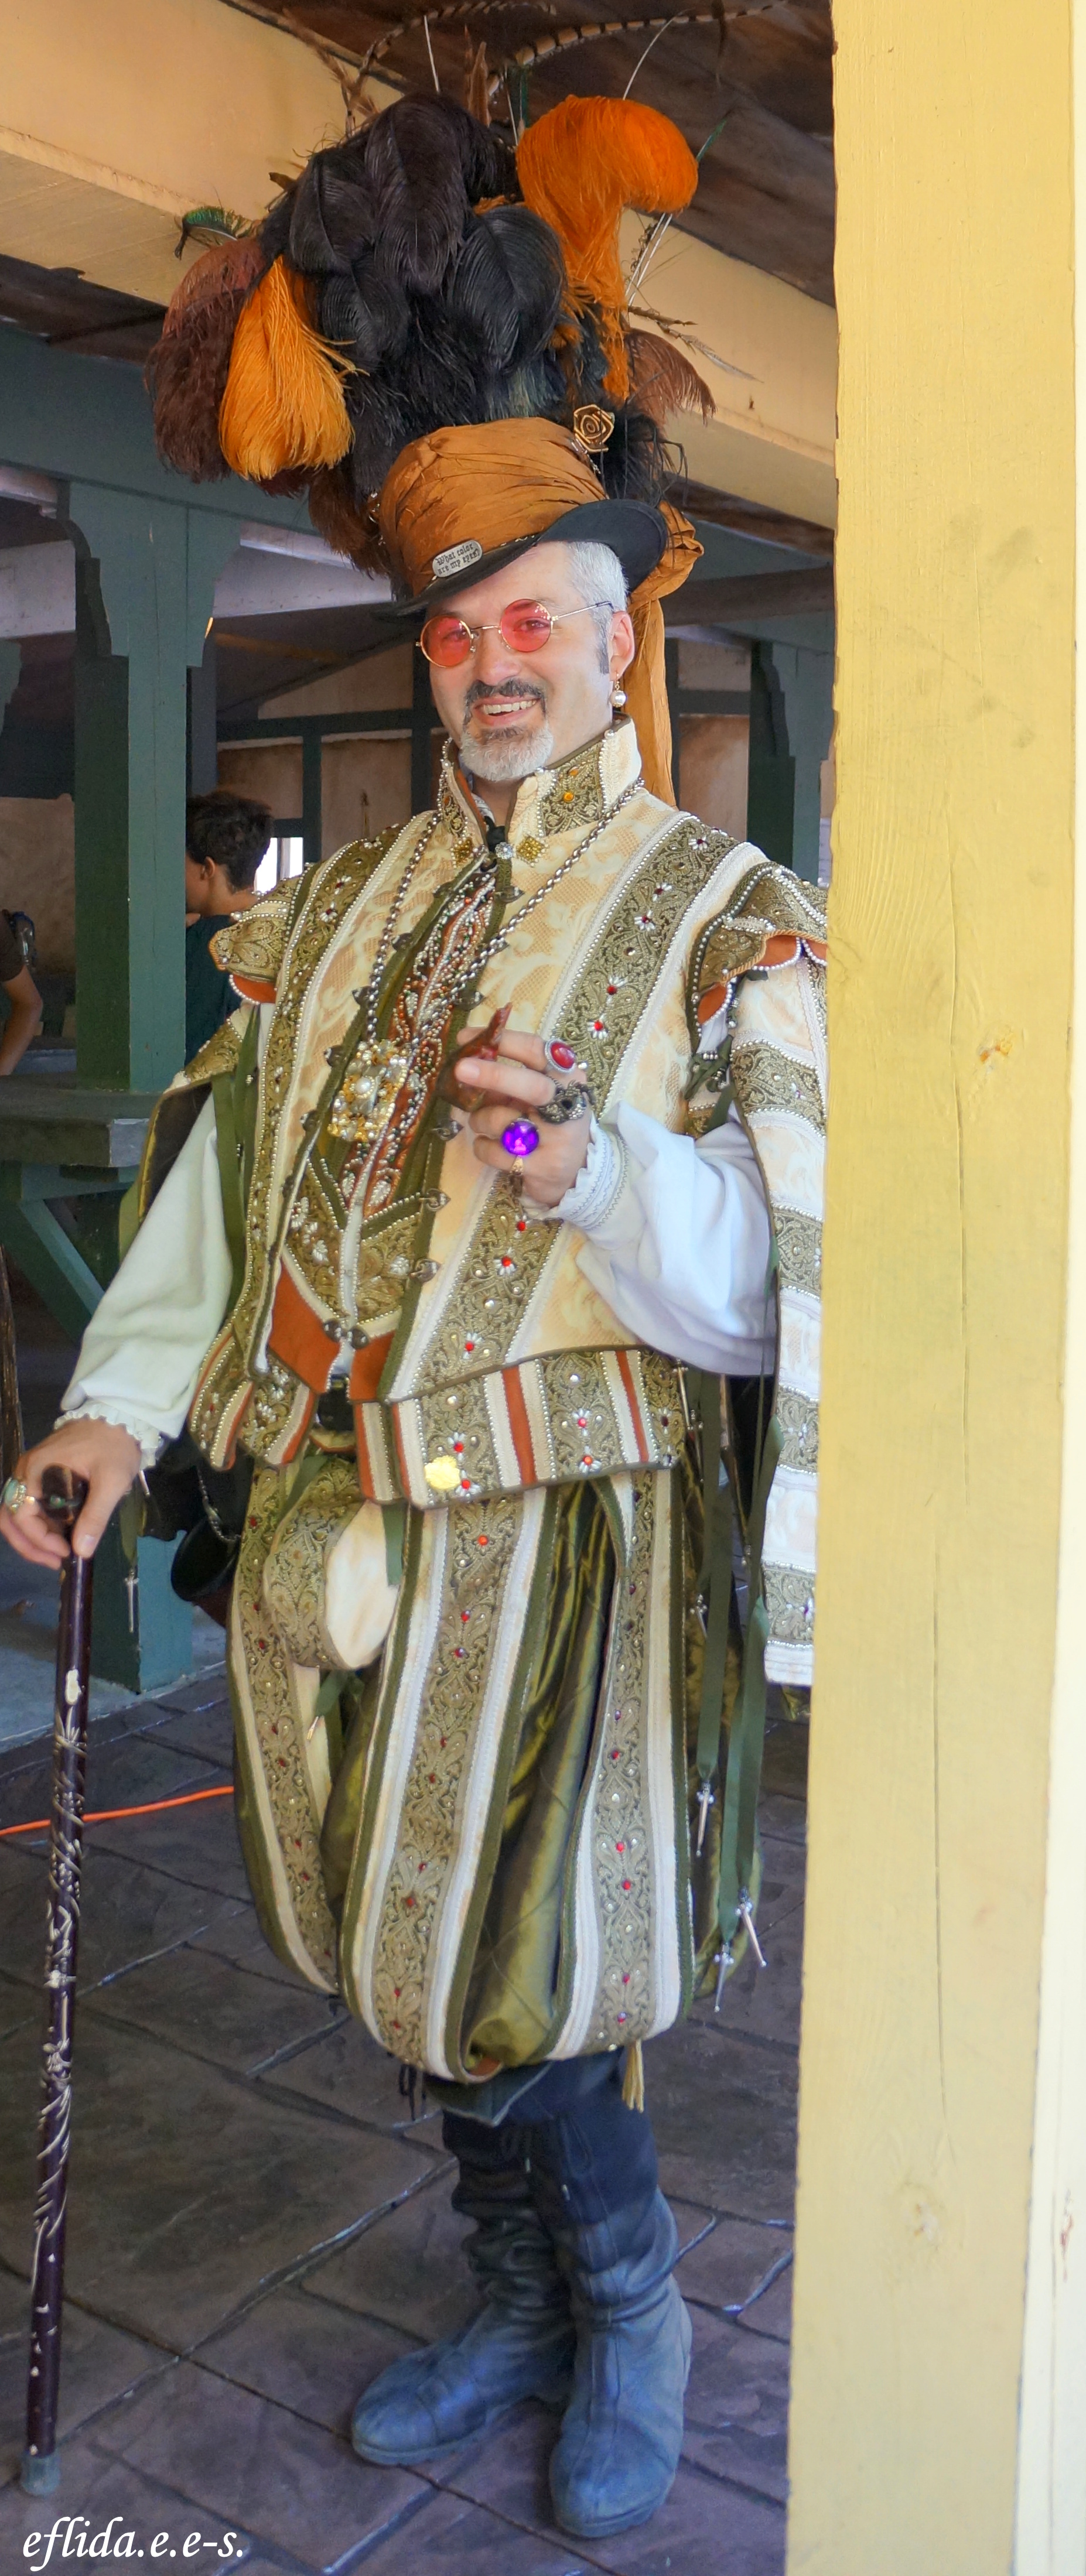 Renaissance Fairs: The Royalties And Who-Are-You's At Michigan Renaissance